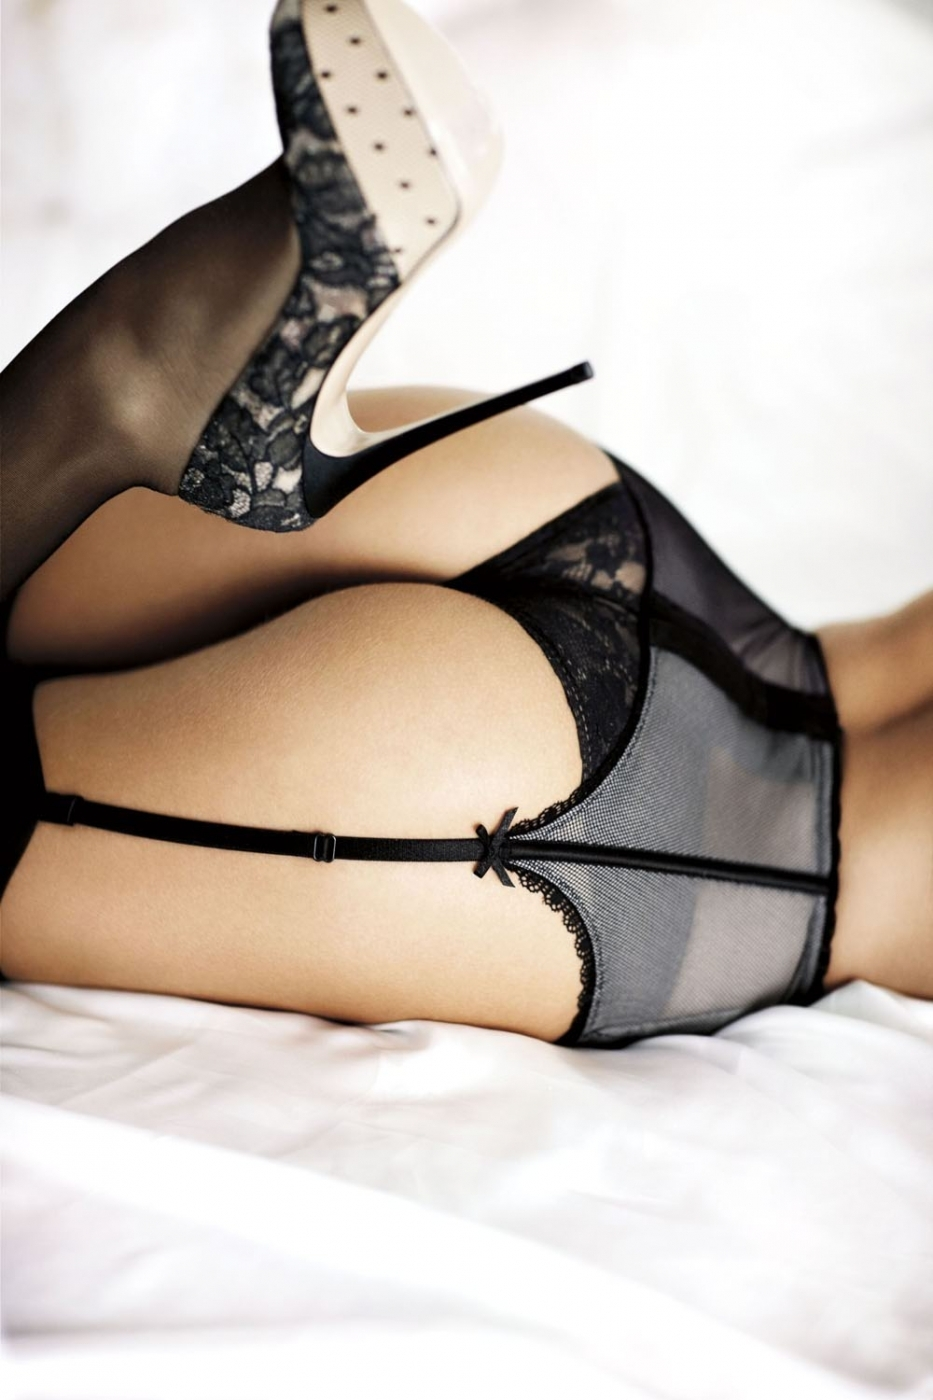 Garter Belt Stockings High Heels